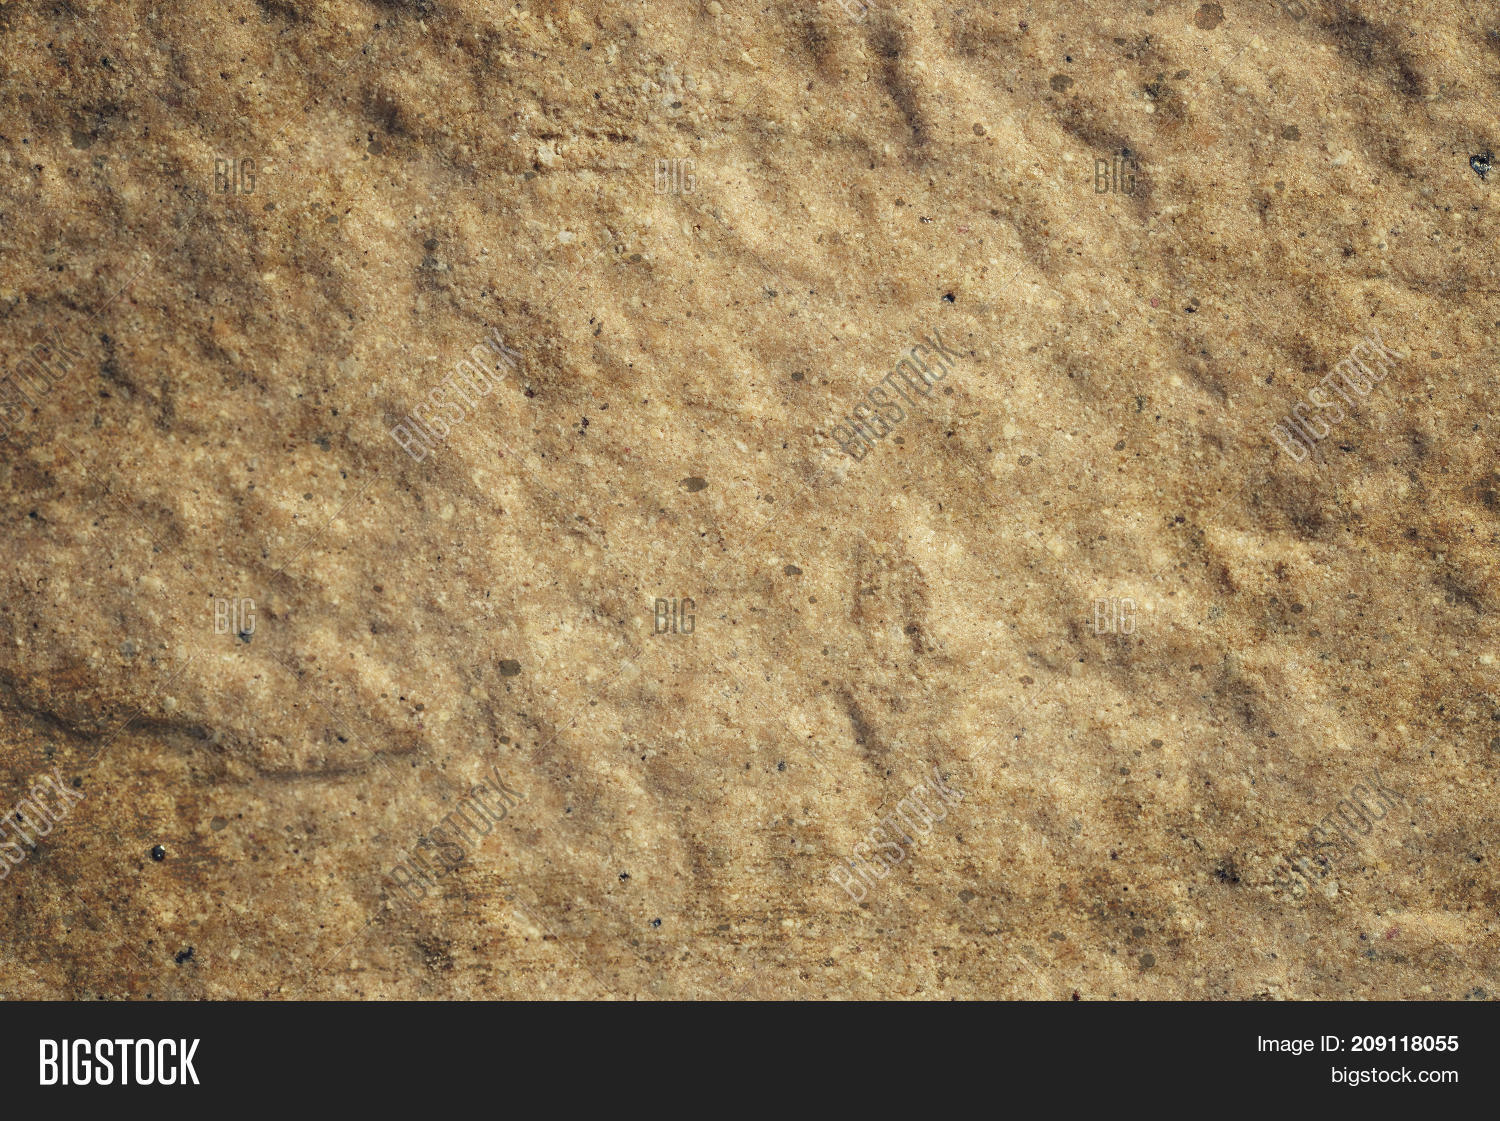 Grunge Texture Background Rustic Concrete Photo For Natural Stone Surface With Drips